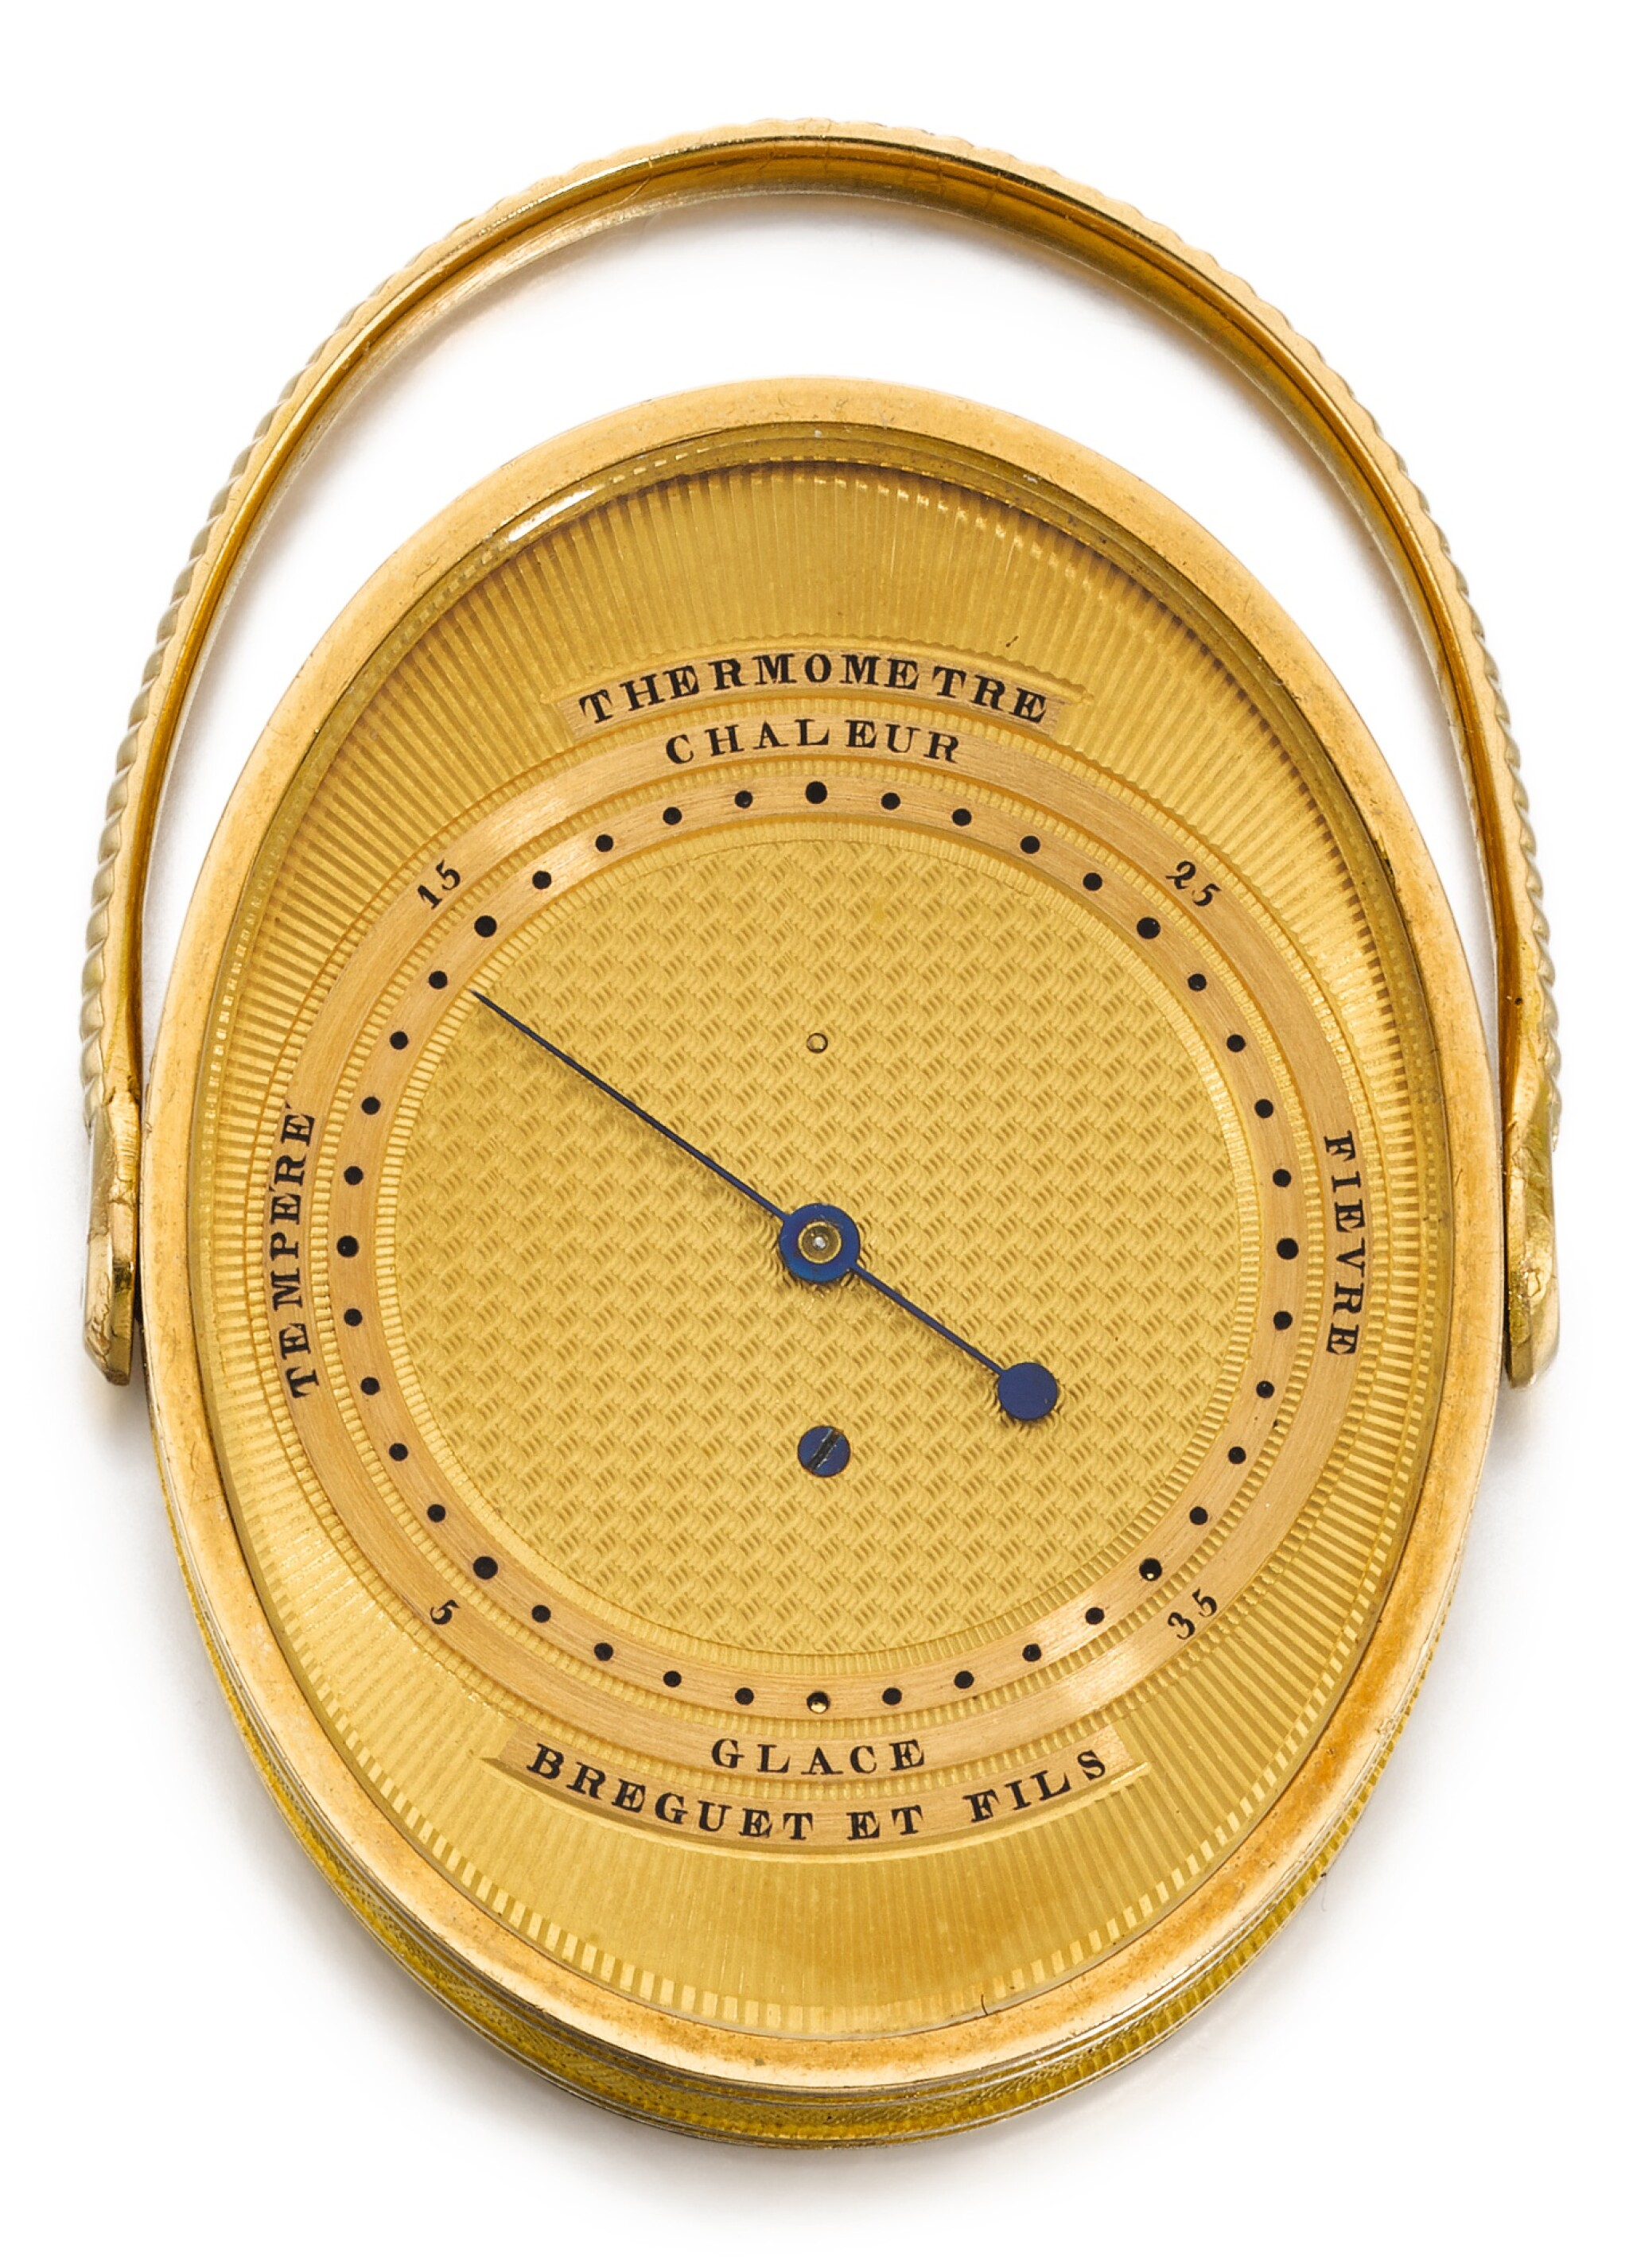 View full screen - View 1 of Lot 59. BREGUET ET FILS   [寶璣]    A VERY RARE GOLD OVAL RING THERMOMETER  NO. 2119, SOLD 1 MAY 1810 BY MOREAU OF LA MAISON RUSSIE TO COMTE POTOCKI FOR 336 FRANCS   [極罕有黃金橢圓形溫度計,編號2119,1810年5月1日以336法郎售予波托茨基伯爵].